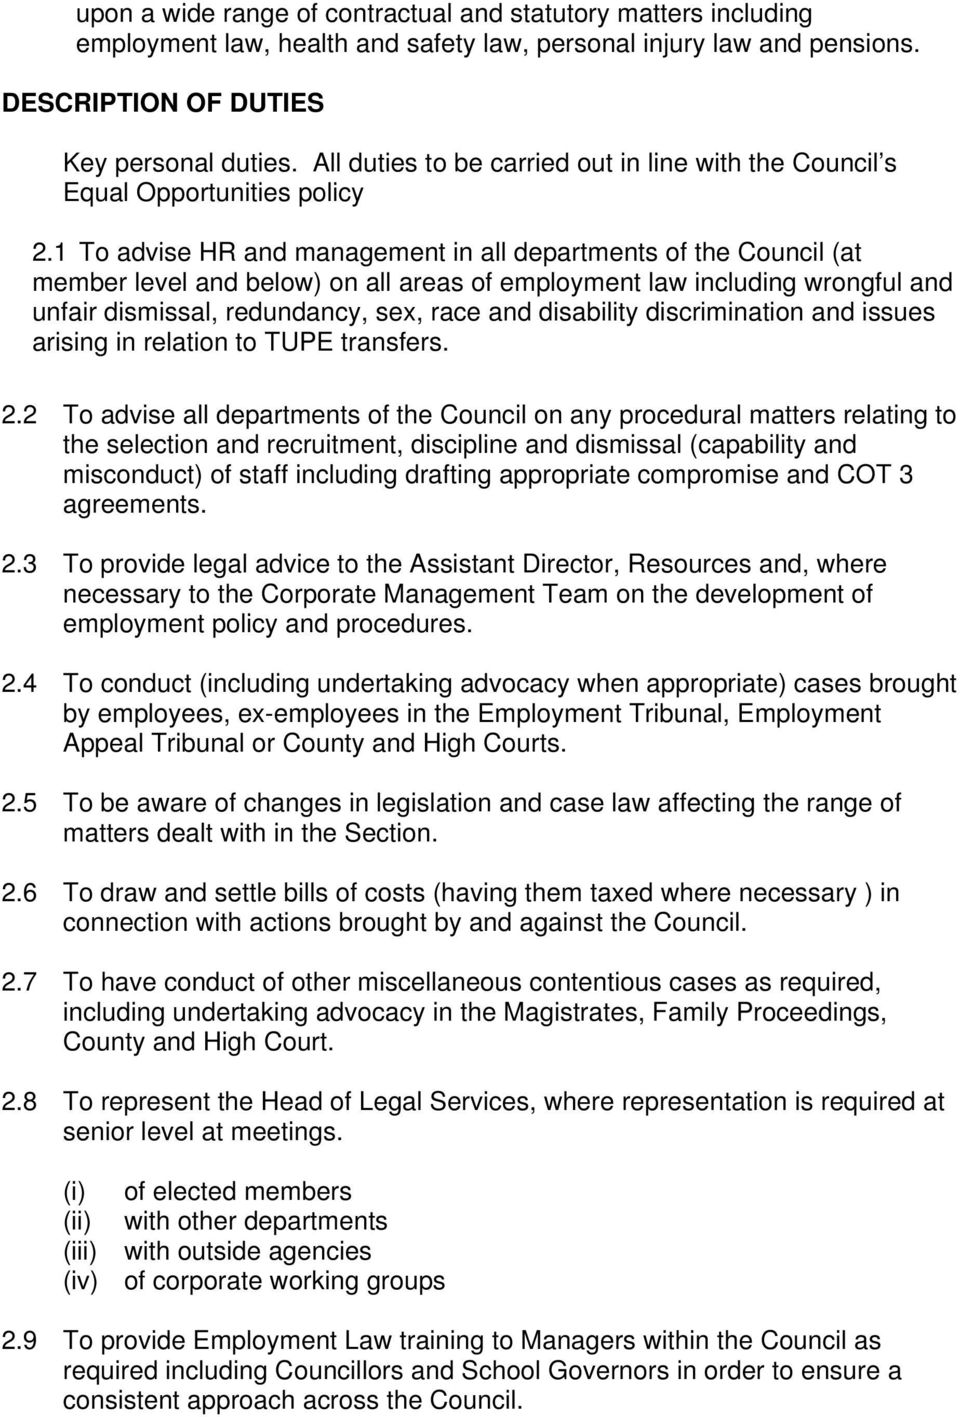 1 To advise HR and management in all departments of the Council (at member level and below) on all areas of employment law including wrongful and unfair dismissal, redundancy, sex, race and